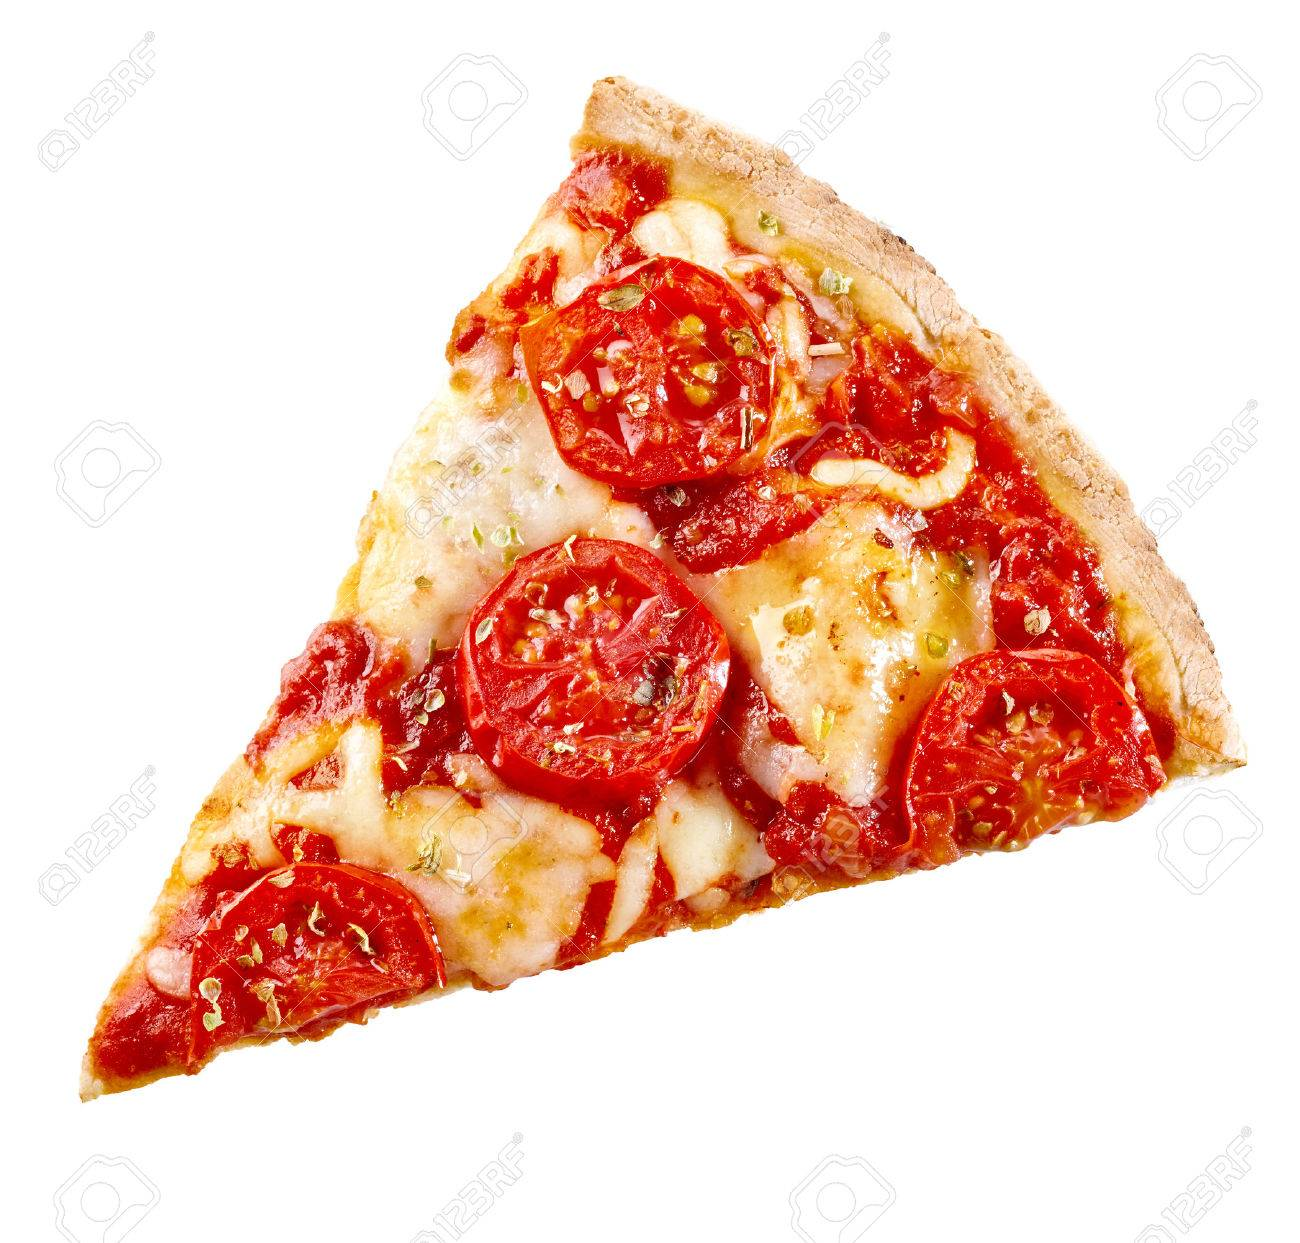 Top View Of A Slice Margherita Italian Pizza With Melted